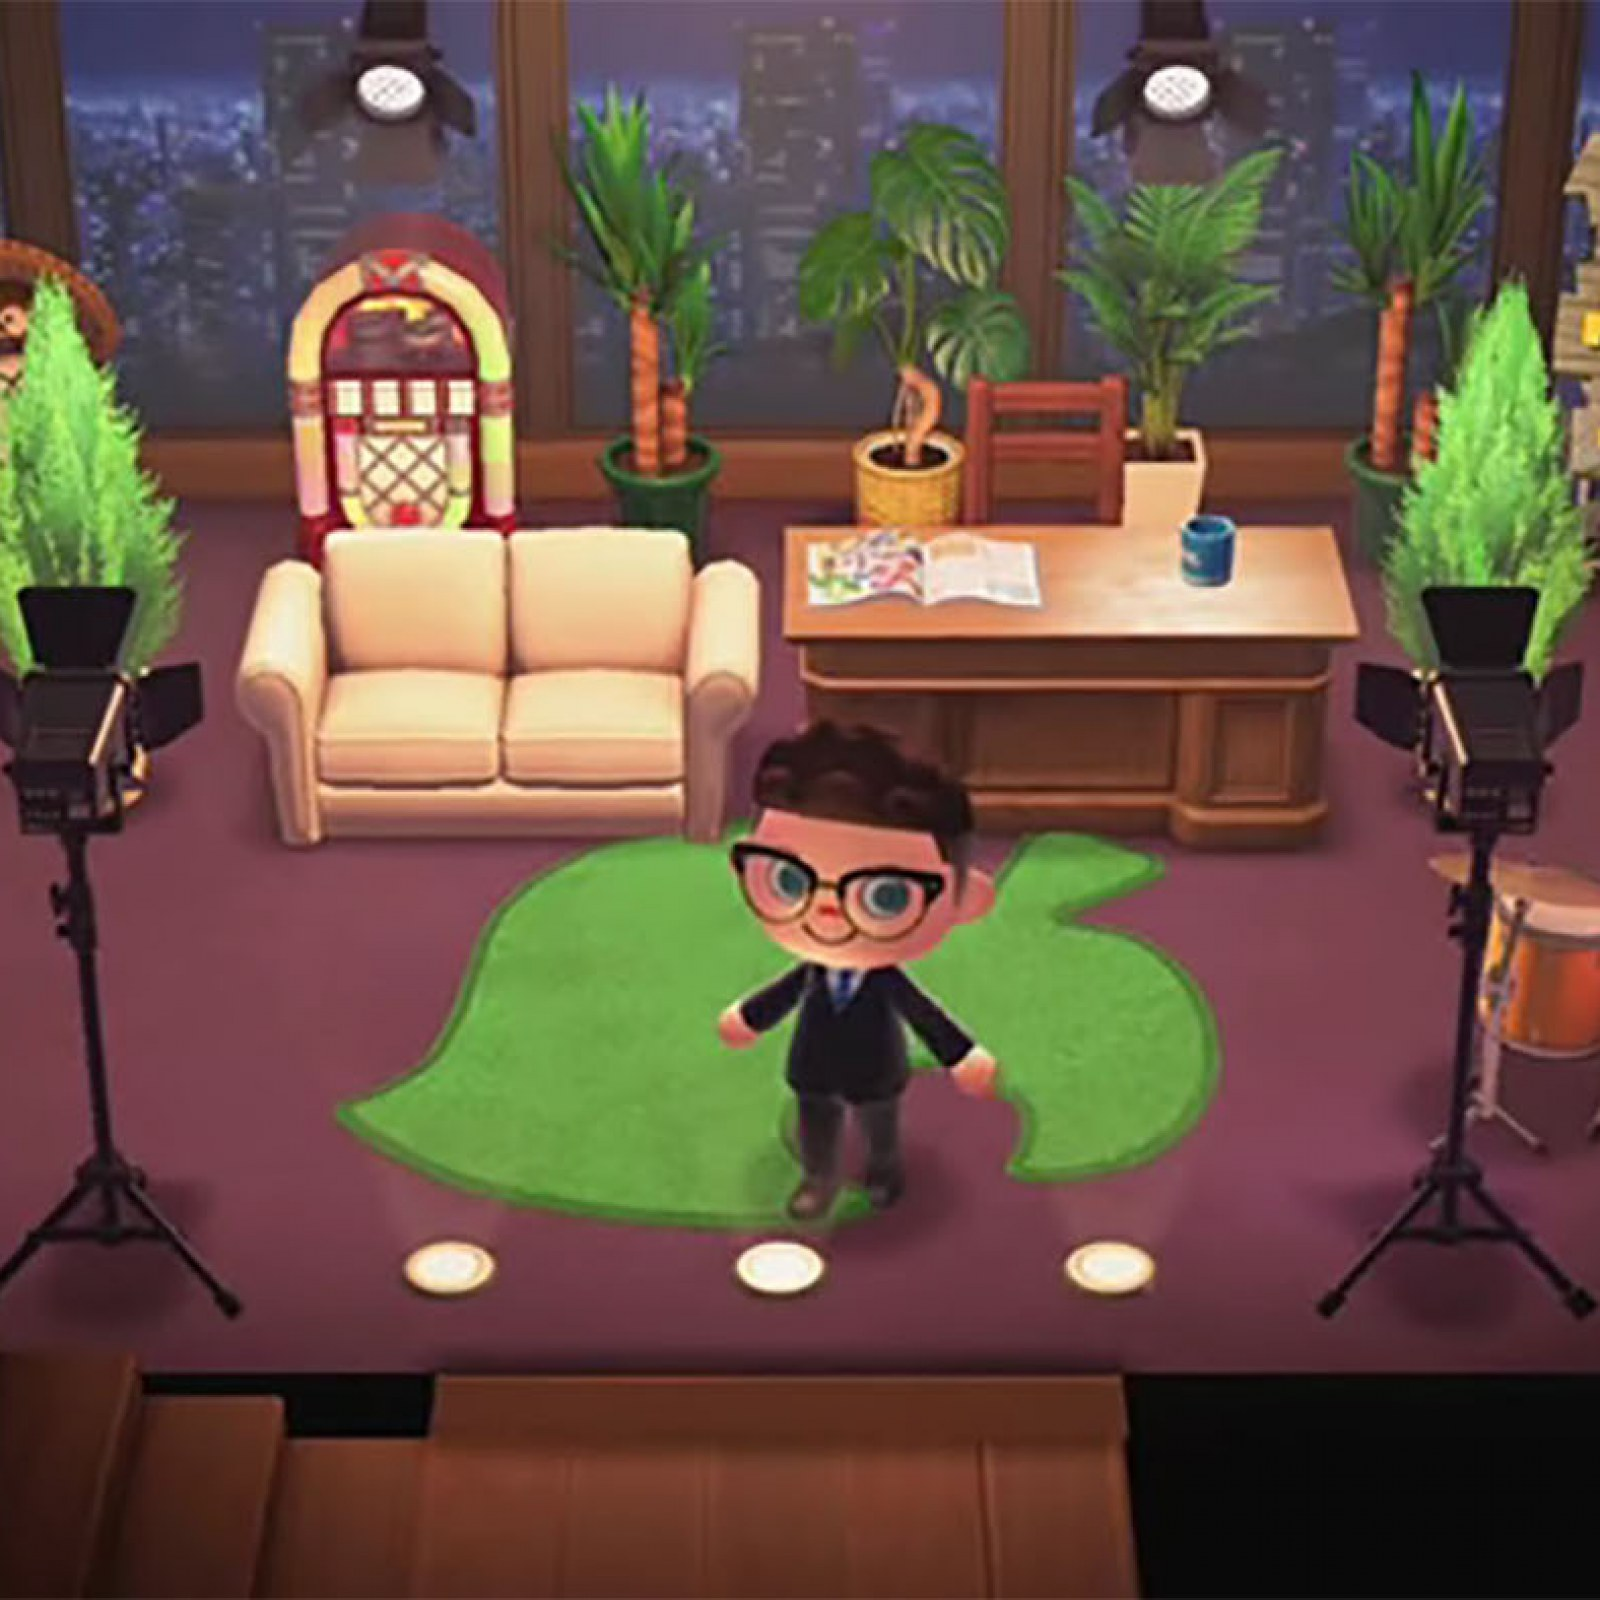 Living Room Animal Crossing New Horizons - RUNYAM on Living Room Animal Crossing New Horizons  id=67609